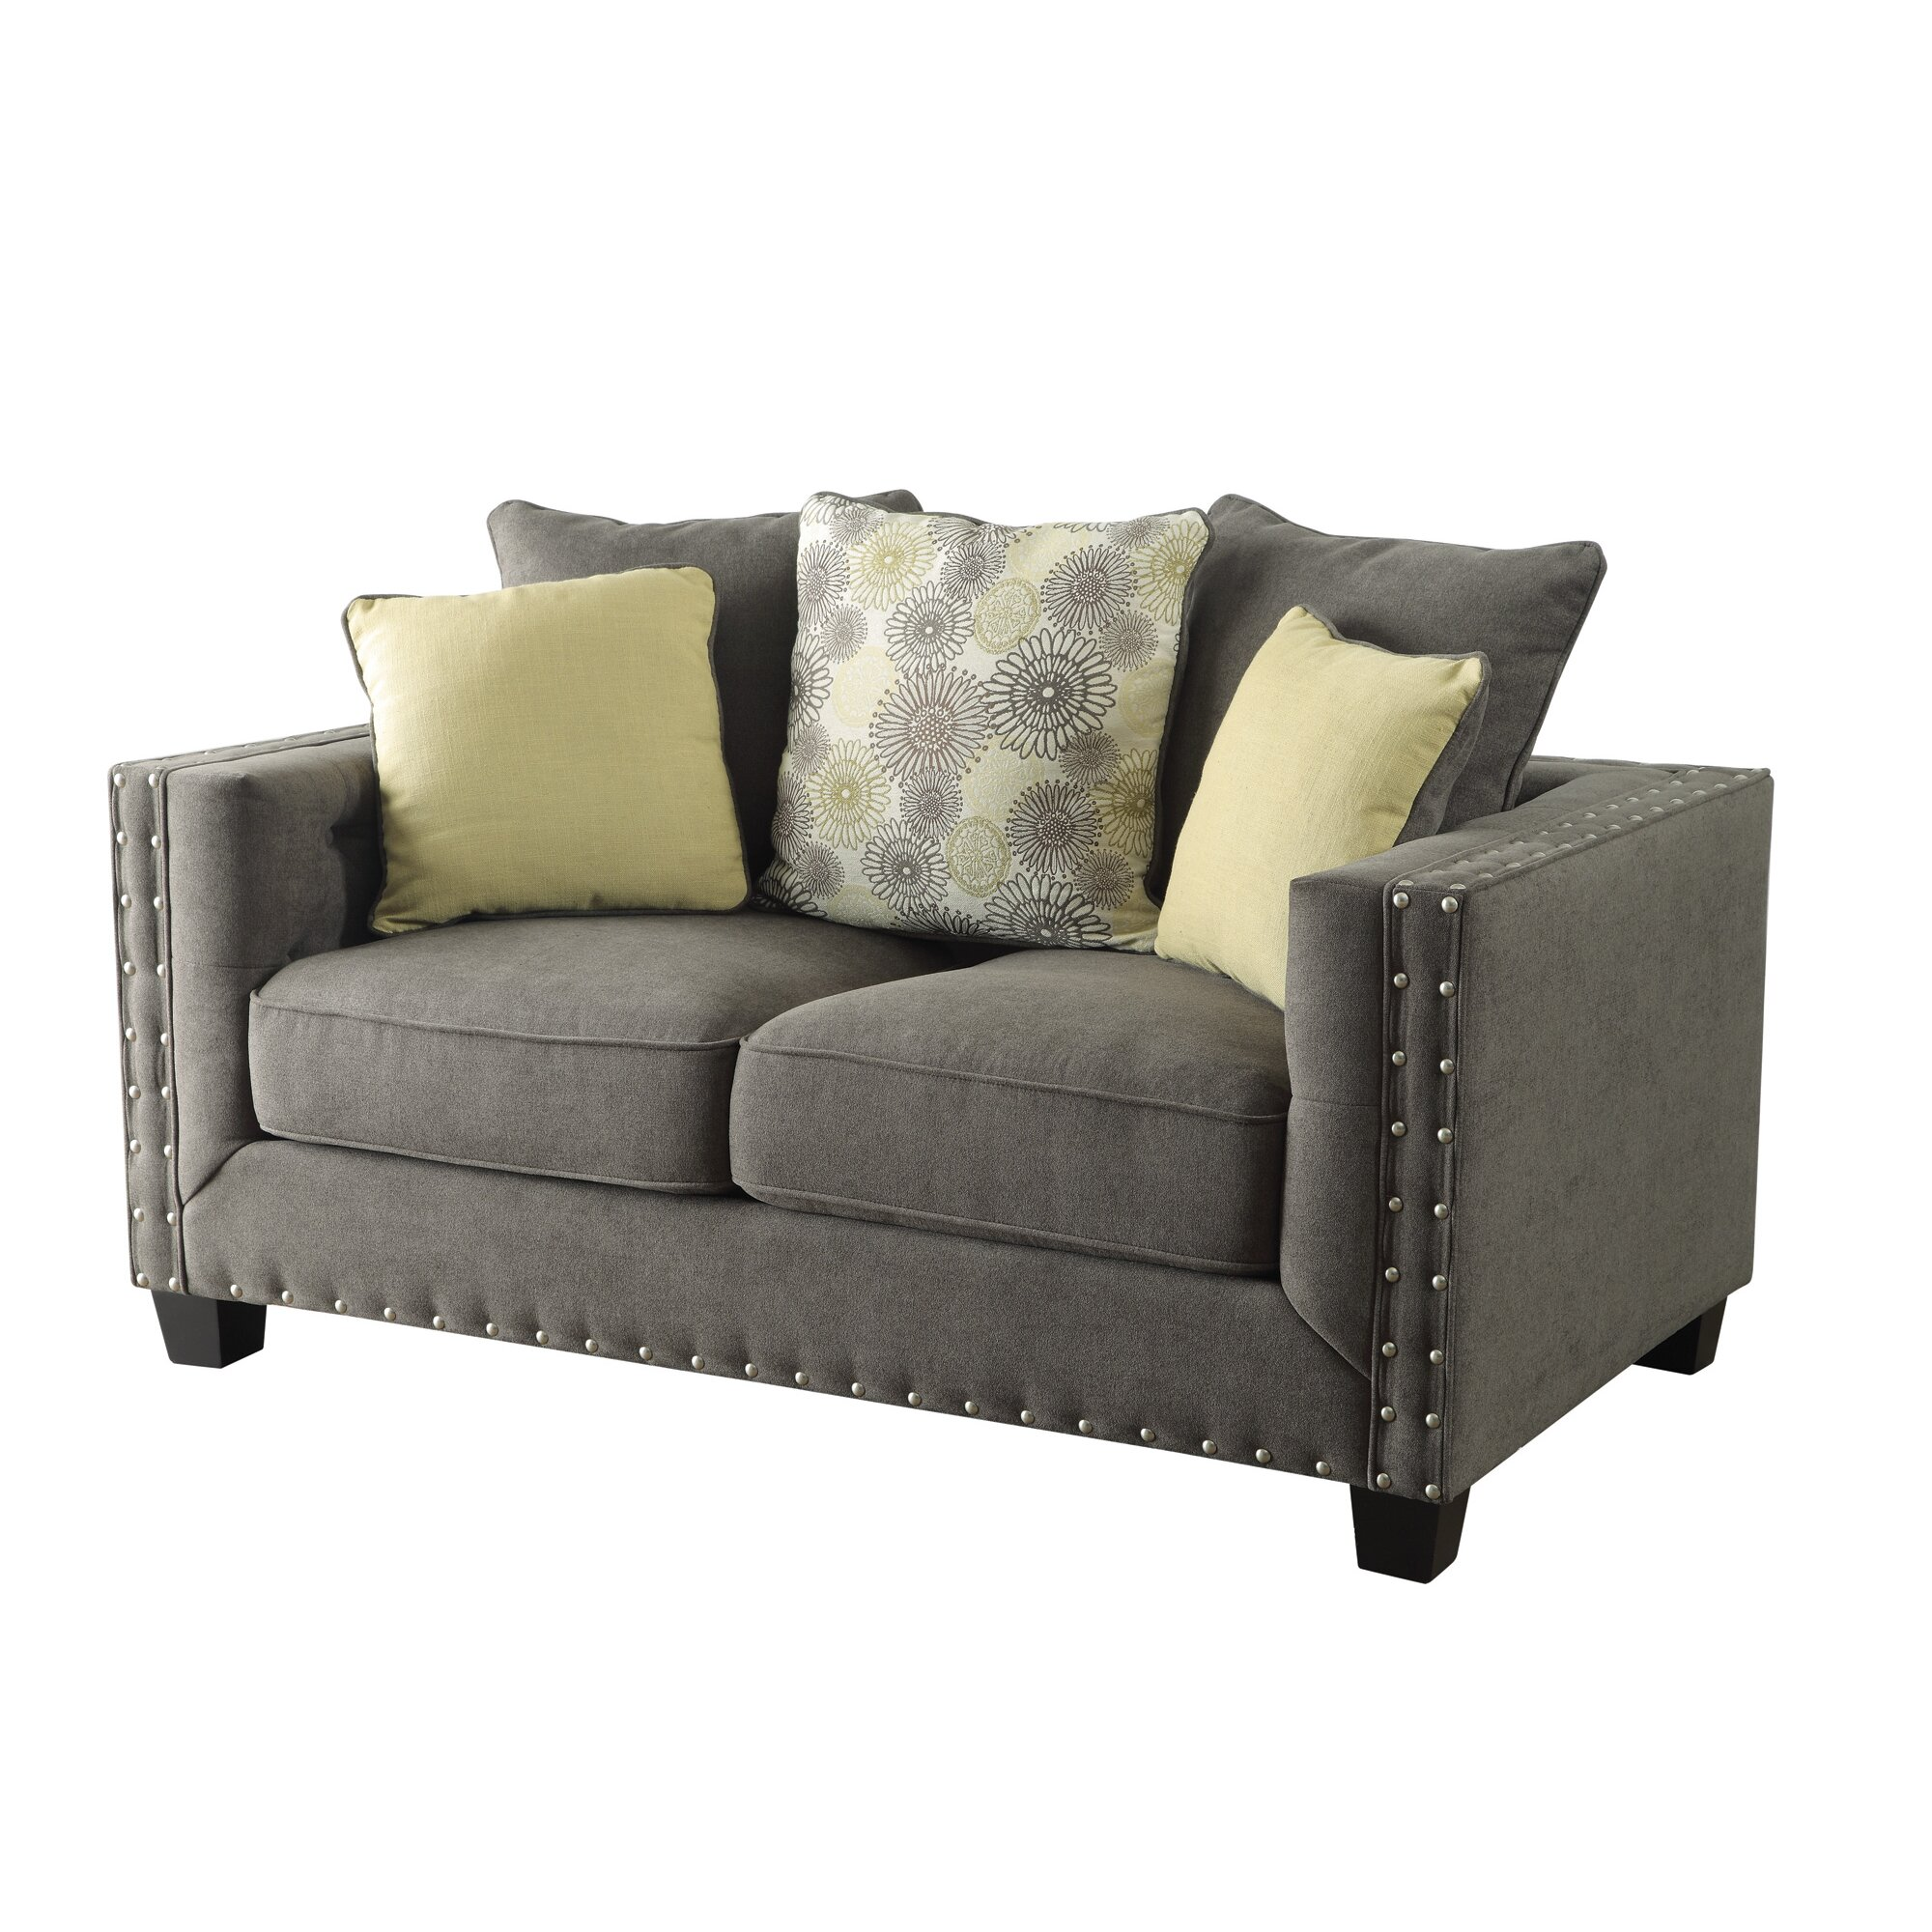 Brayden Studio Brixey Tufted Loveseat Reviews Wayfair